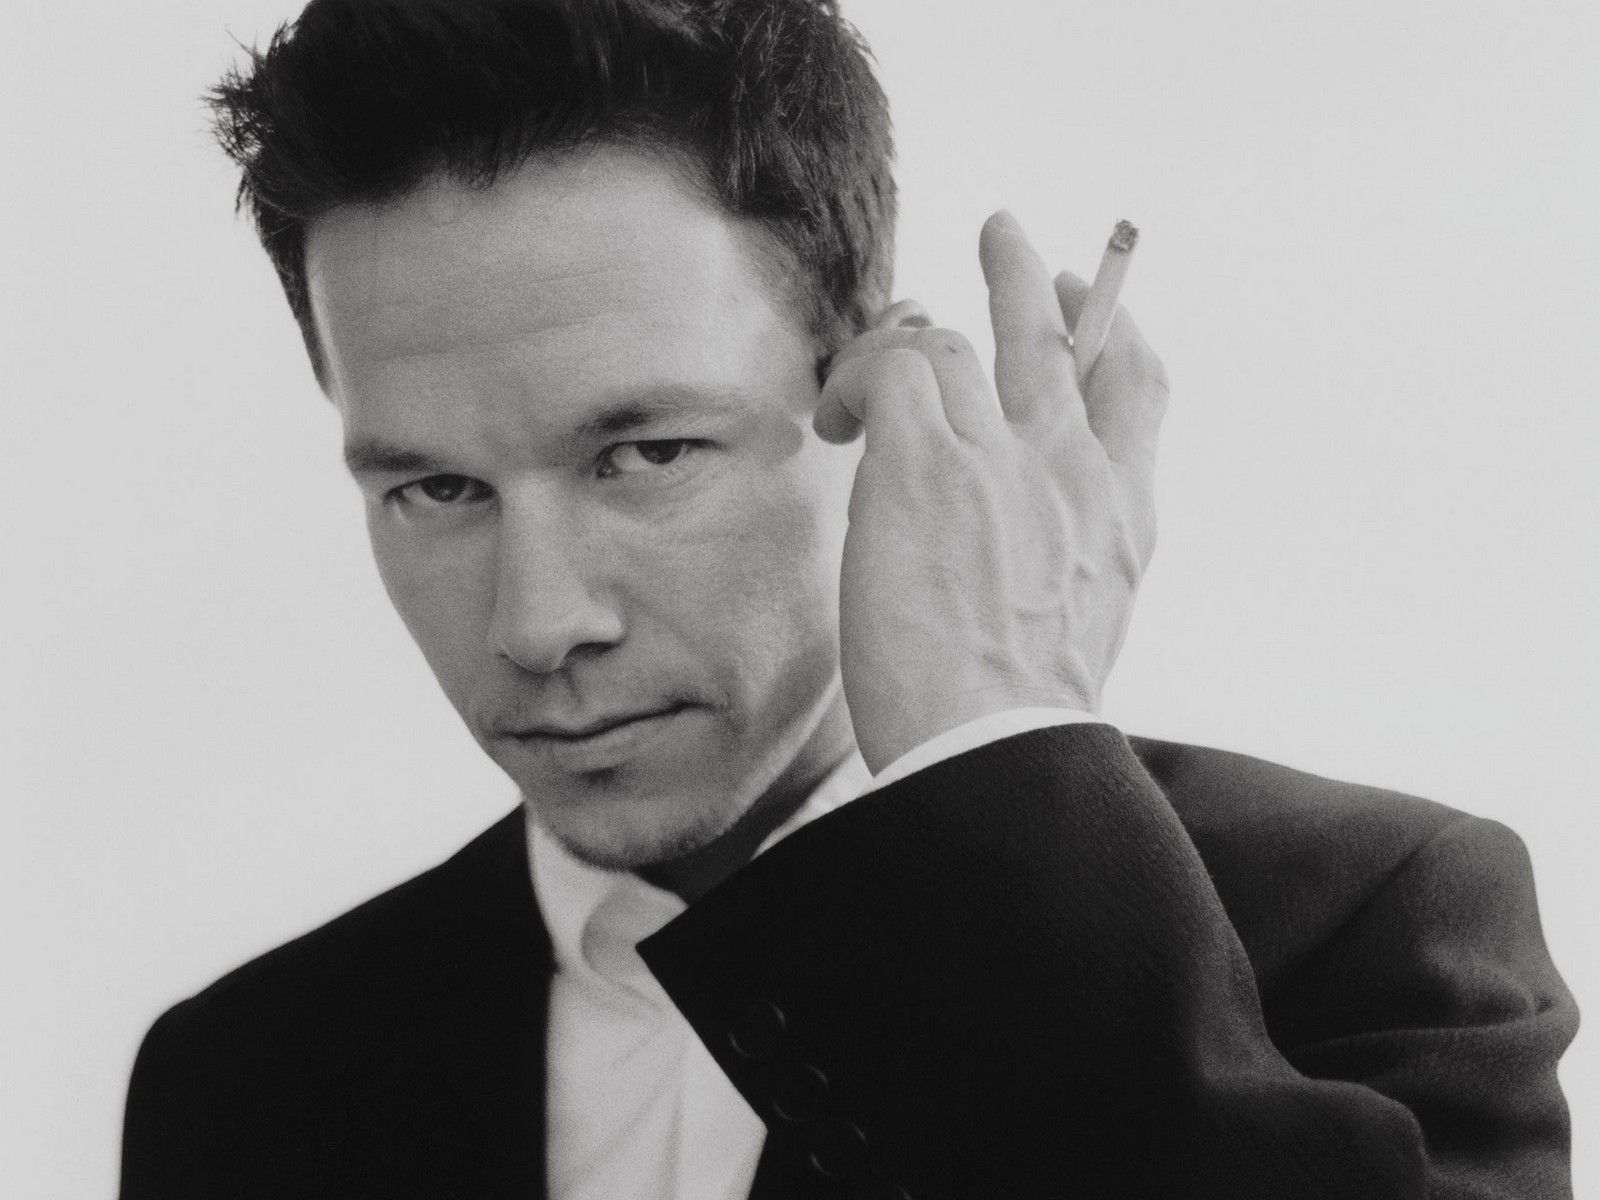 1600x1200 - Mark Wahlberg Wallpapers 26